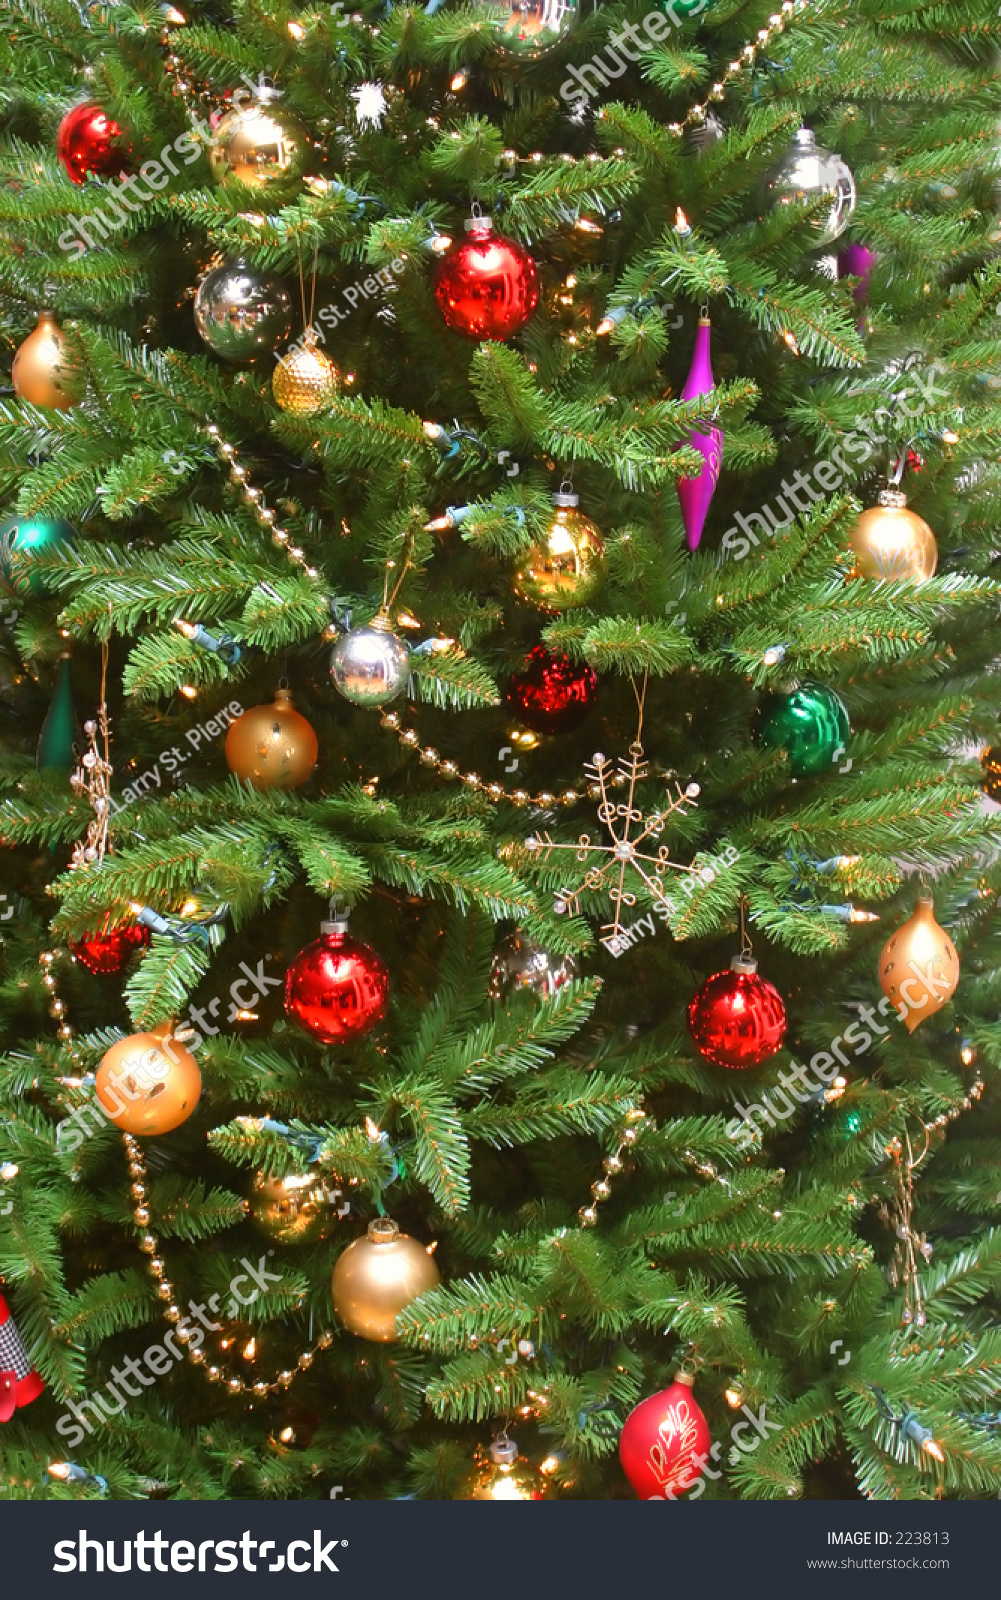 Colorful christmas tree with decorations stock photo for Colorful christmas tree decorations